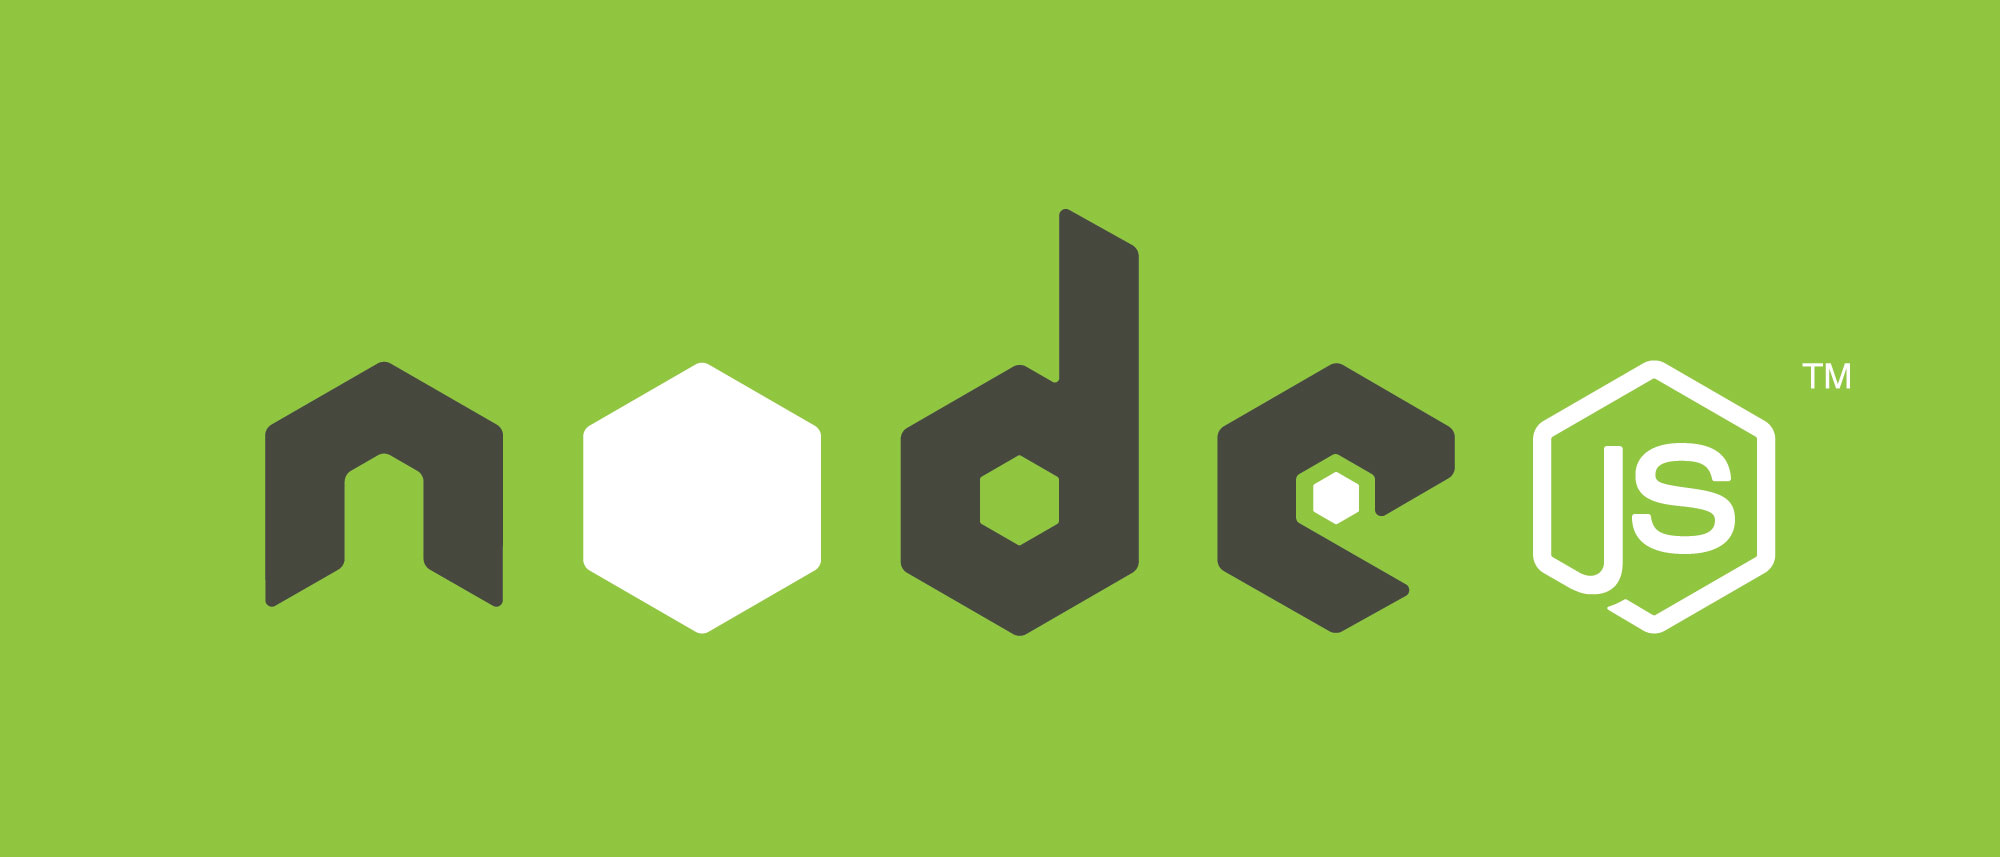 6 Main Reasons Why Node.js Has Become a Standard Technology for Enterprise-Level Organizations By Karolina Gawron